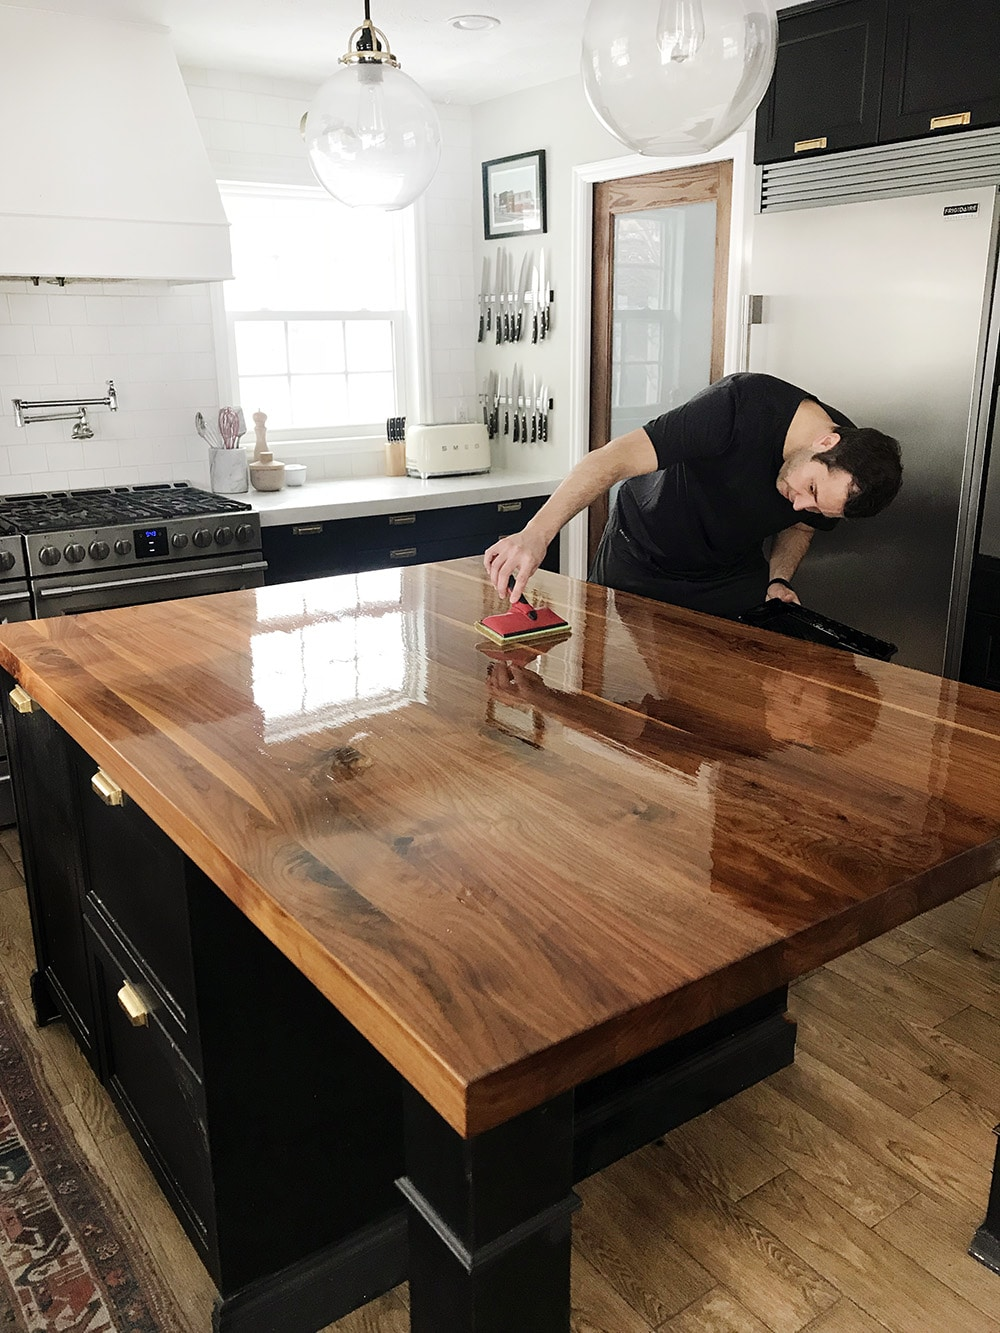 How We Refinished our Butcher block Countertop - Chris Loves ...